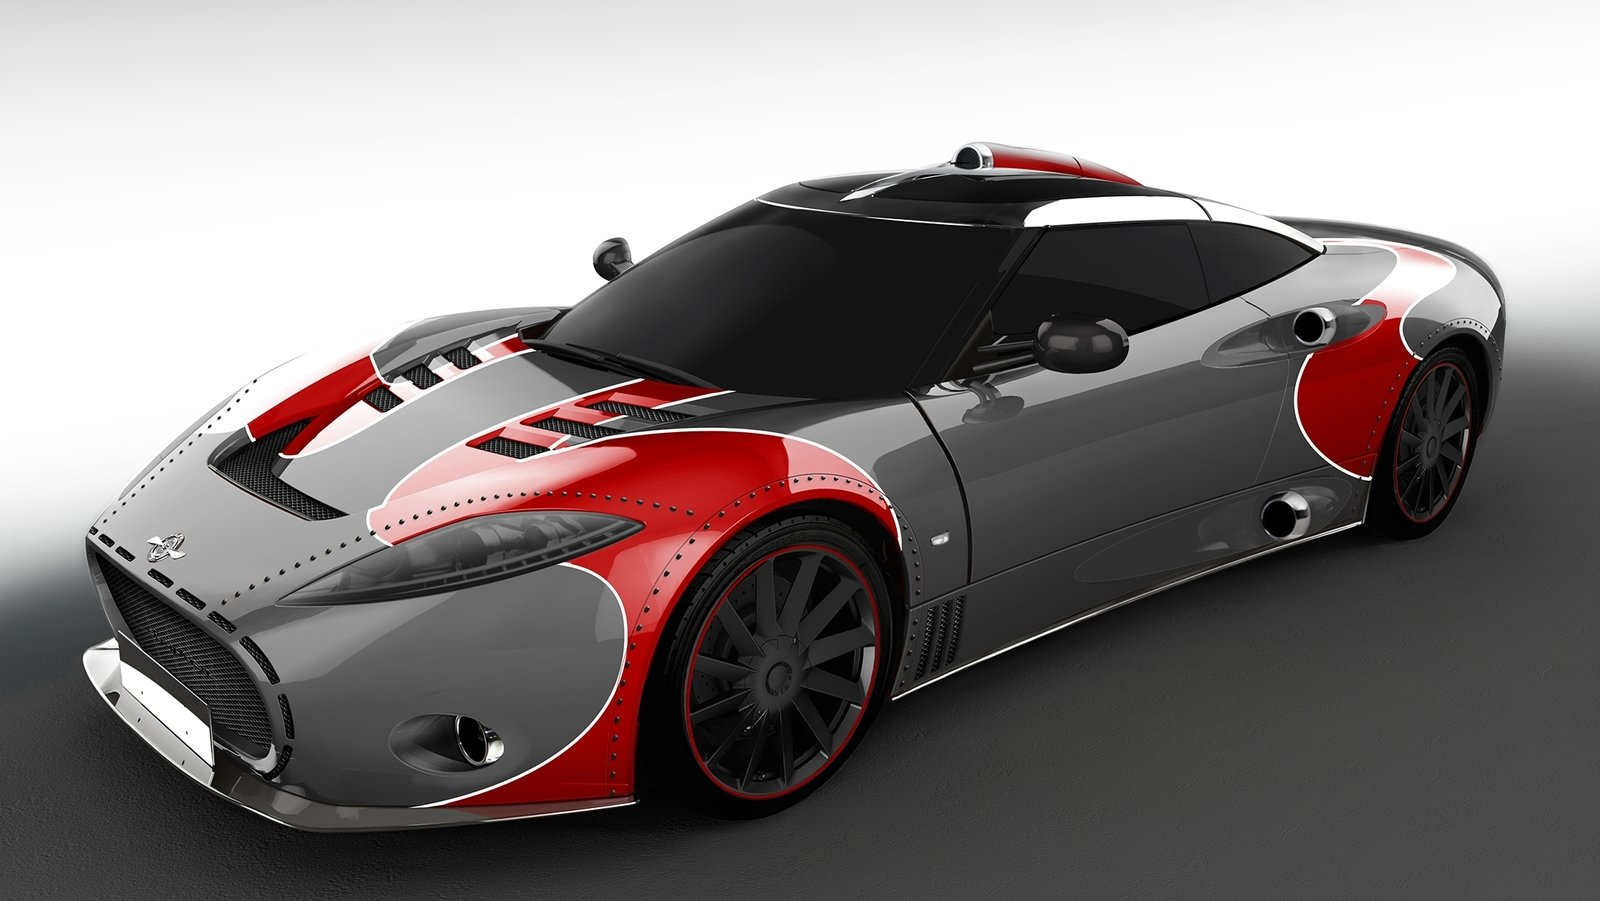 2017 Spyker C8 Aileron Lm85 Pictures Photos Wallpapers